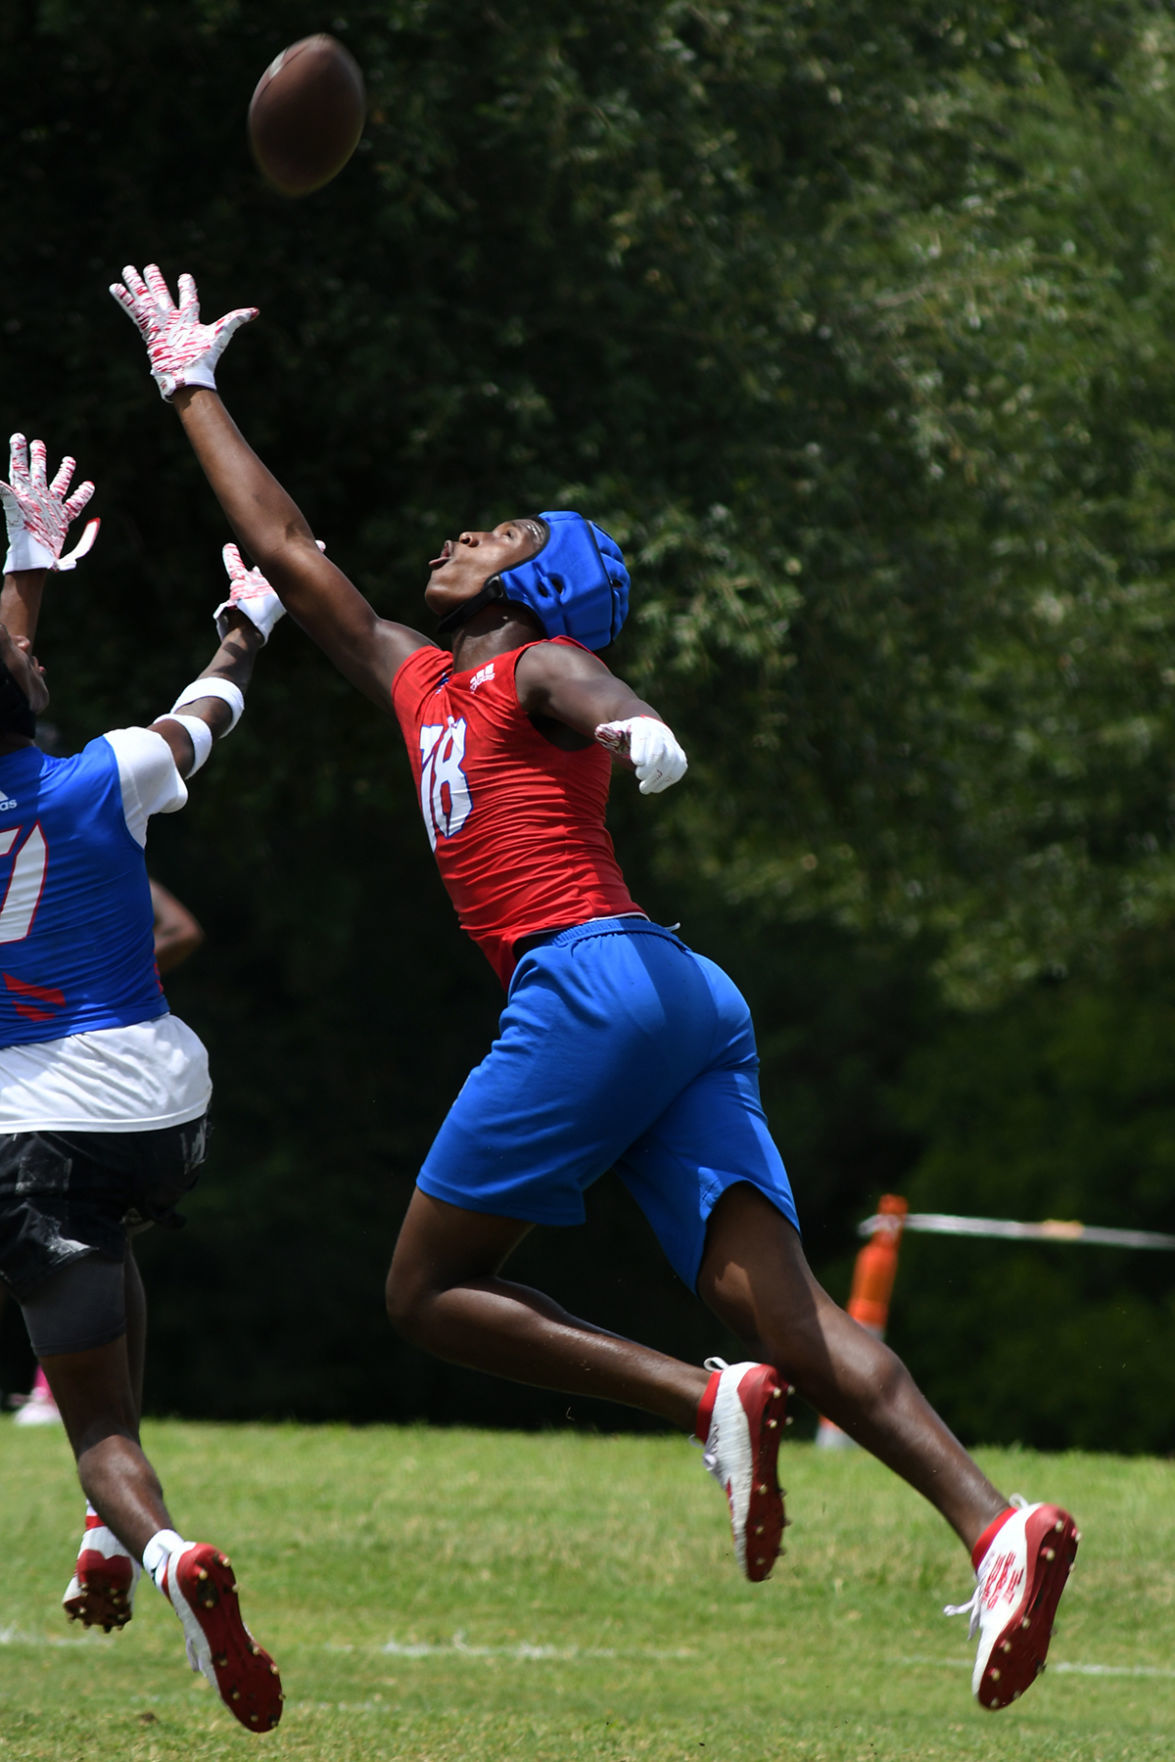 7 on 7 State Tournament